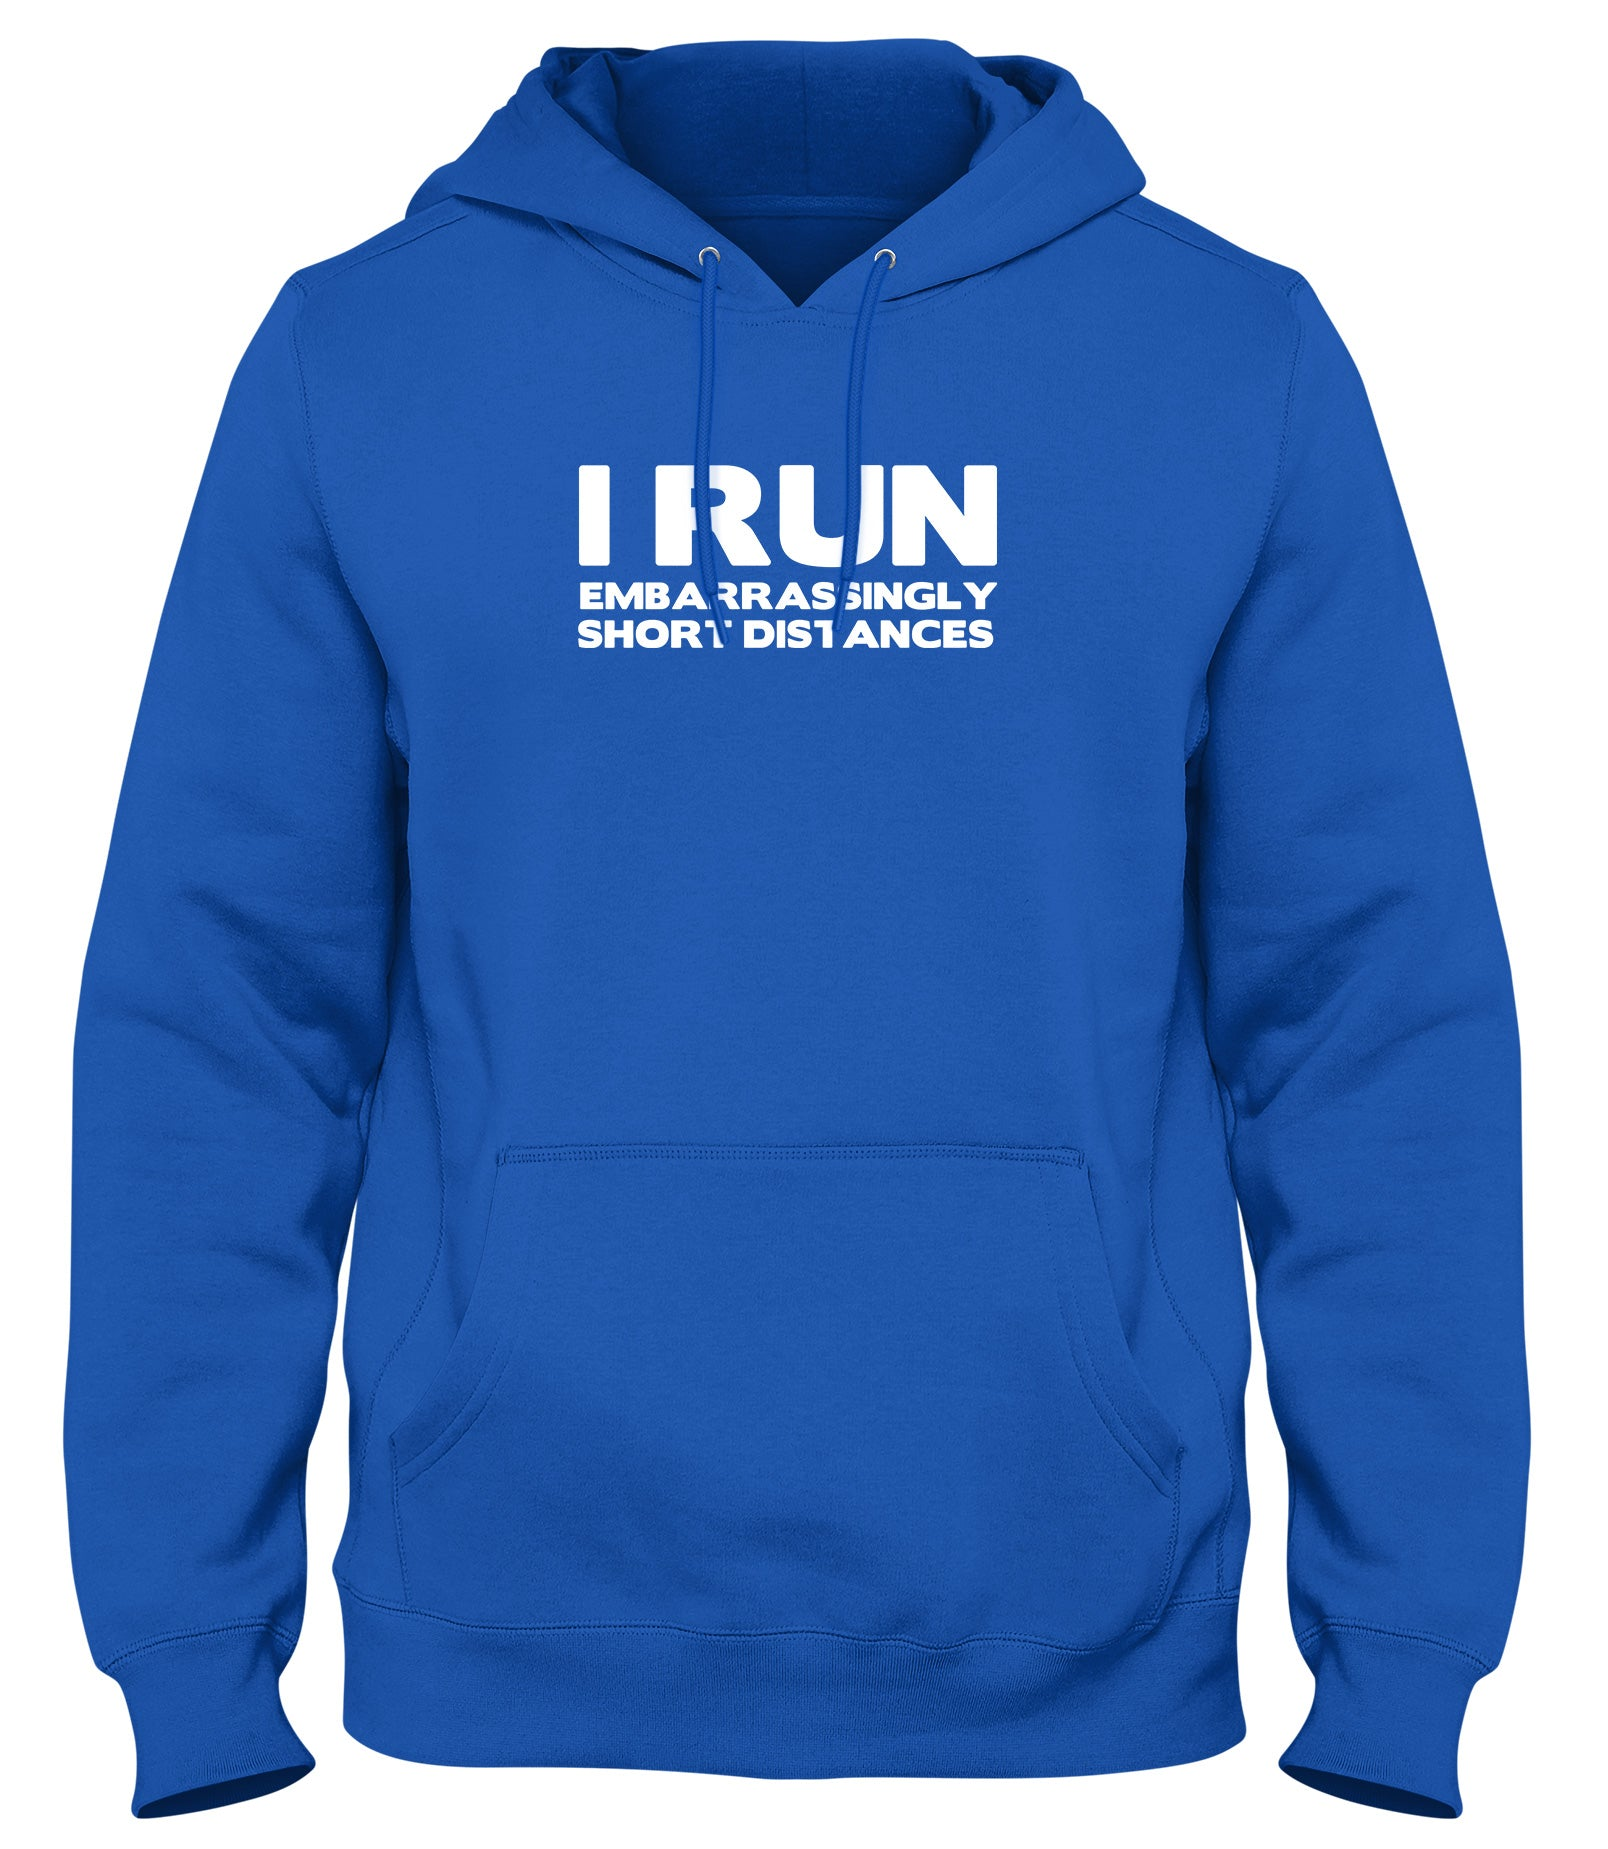 I RUN EMBARRASSINGLY SHORT DISTANCES MENS WOMENS UNISEX FUNNY HOODIE